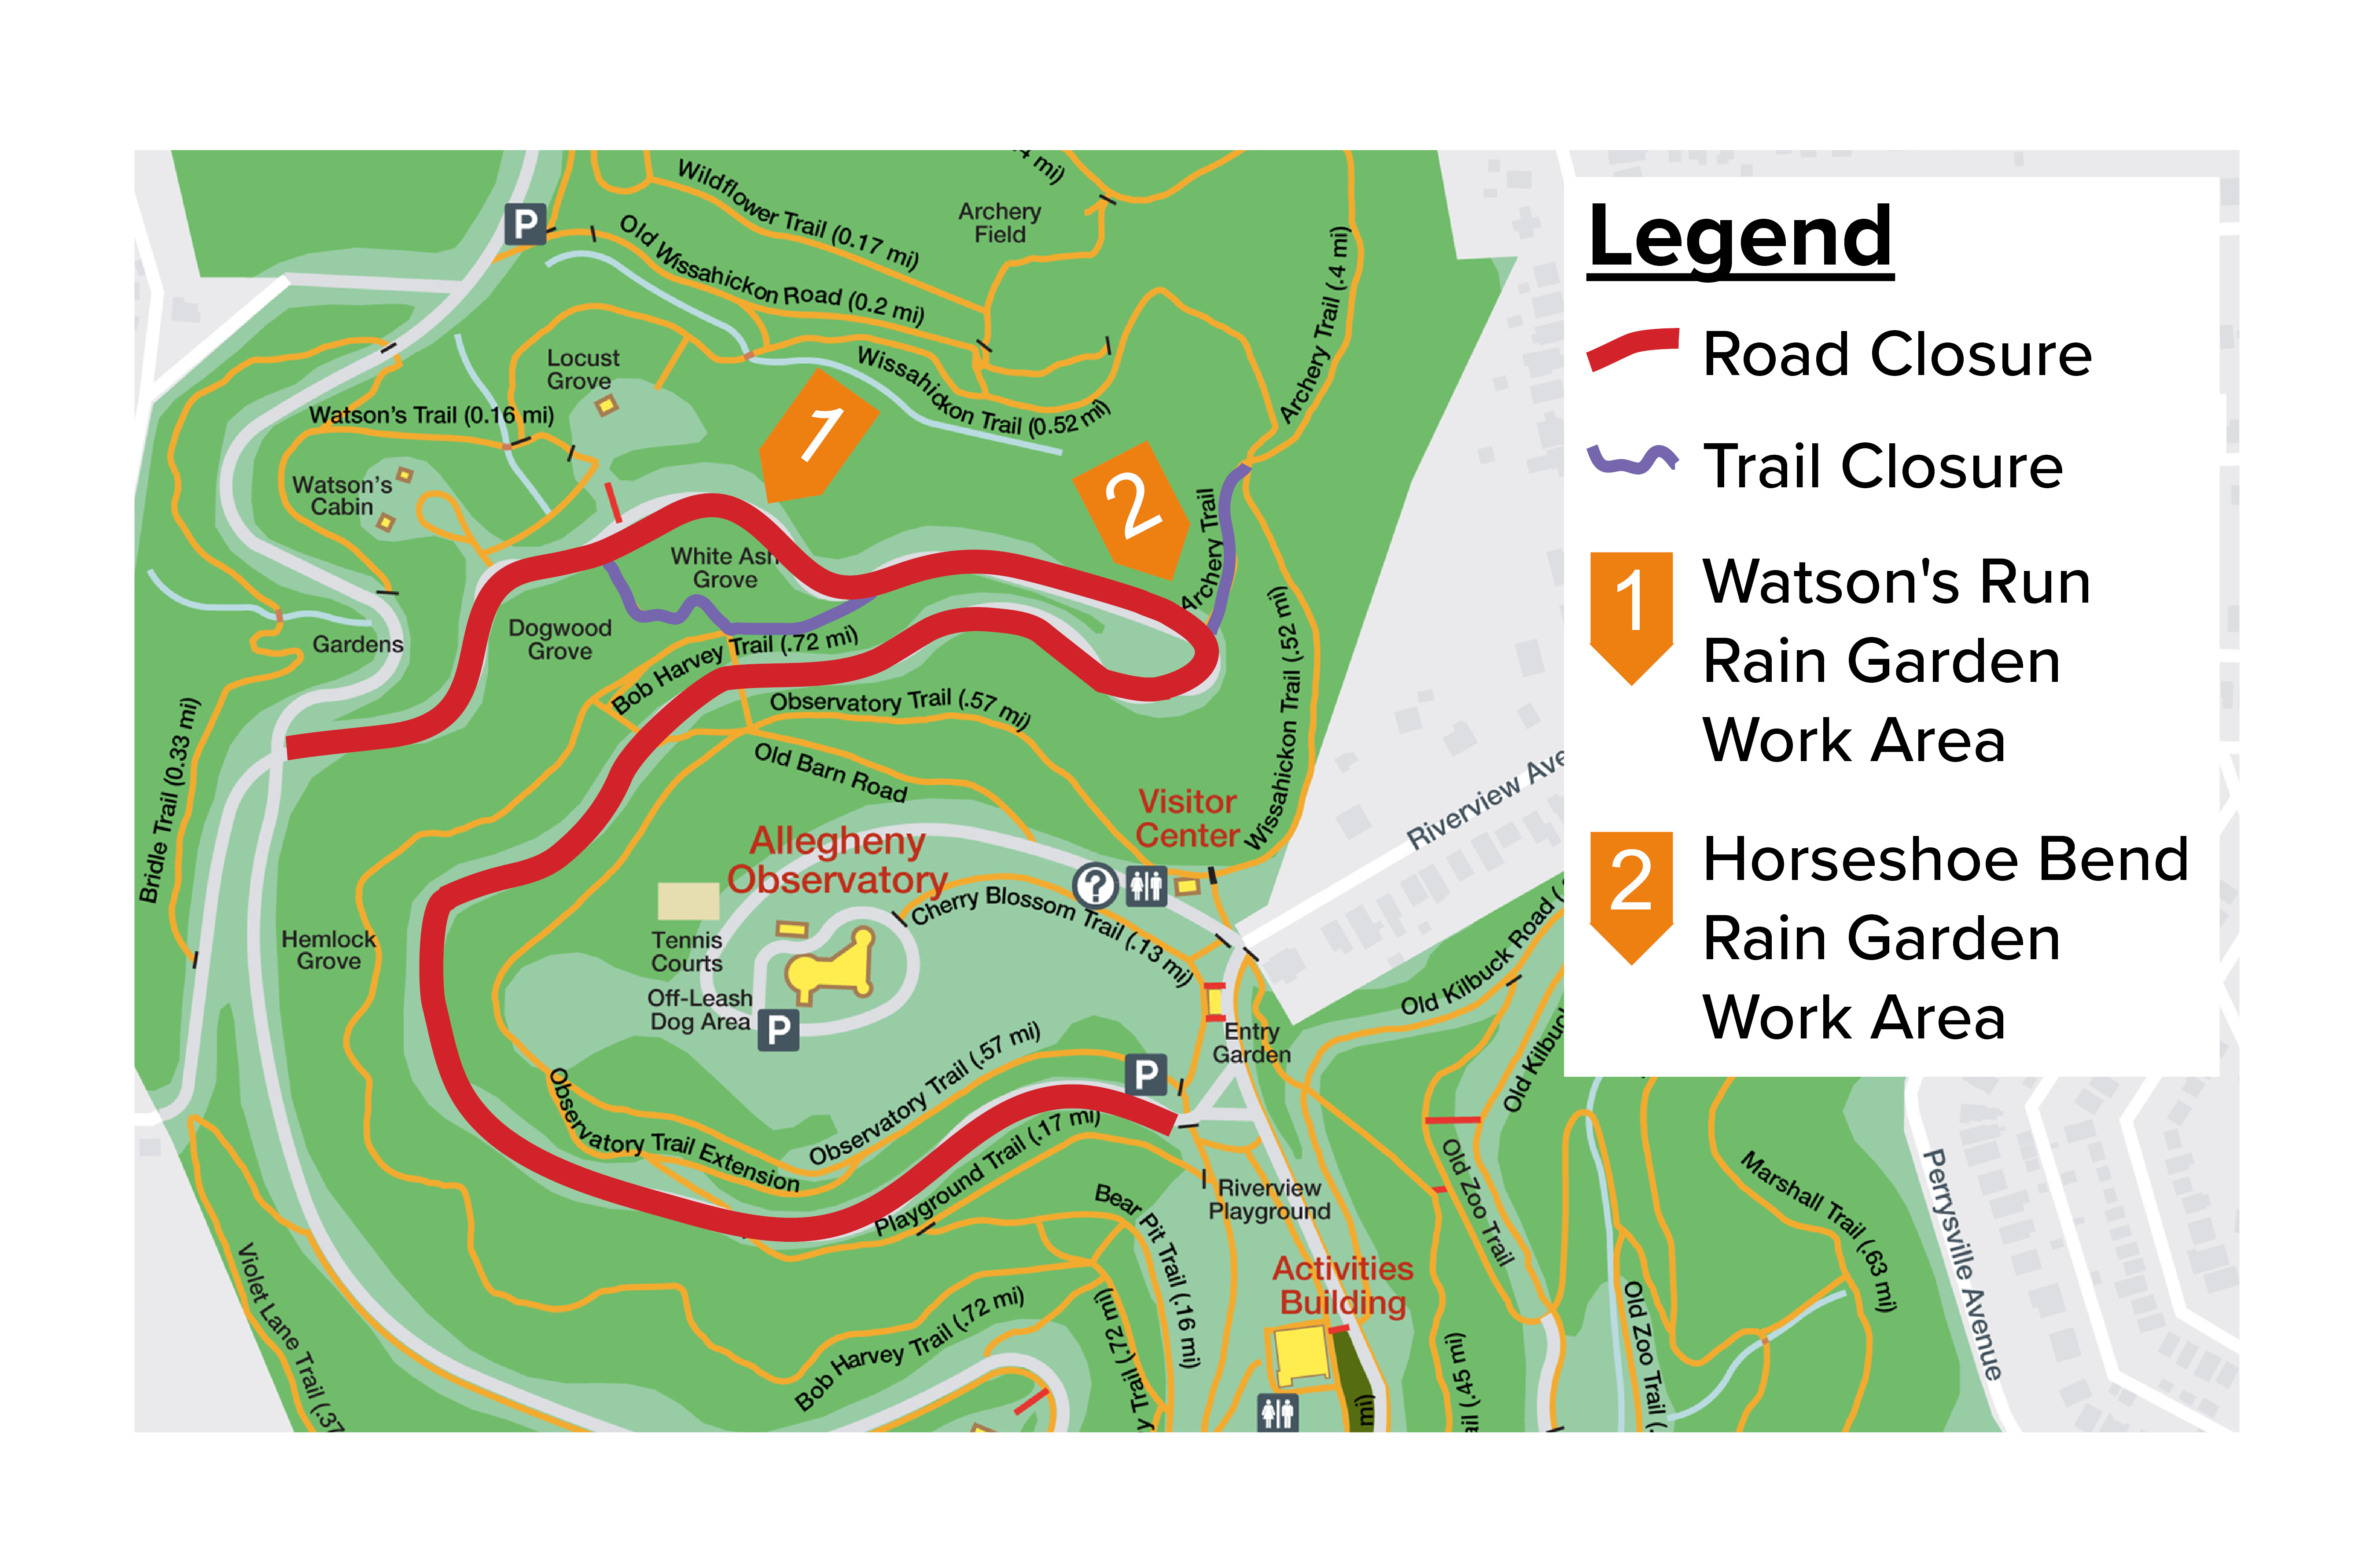 Map showing road and trail closures for project phase one